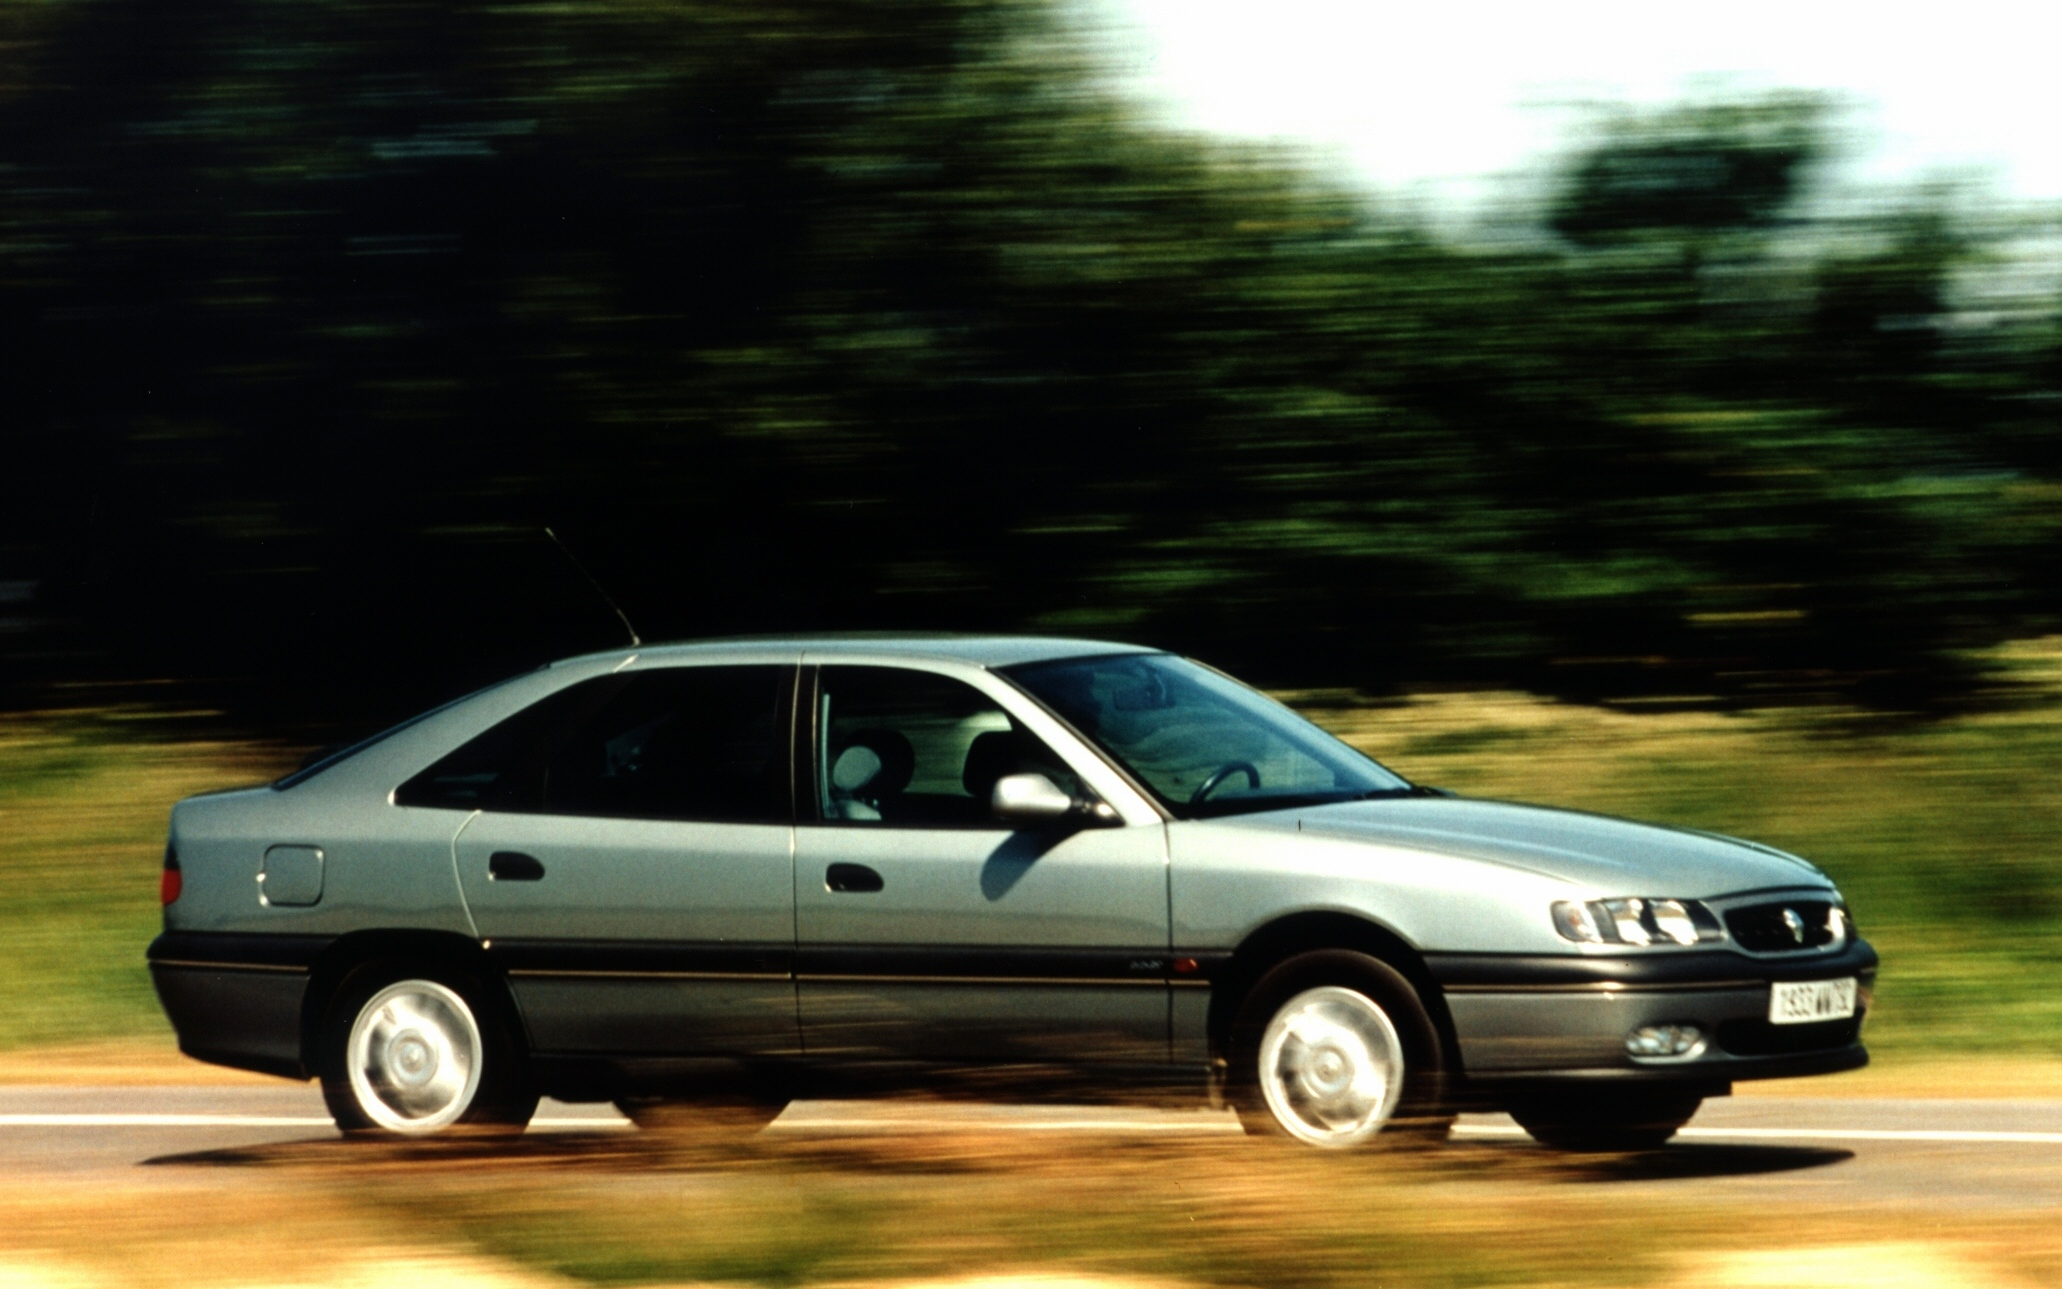 1996 Renault Safrane Hatchback 5-door